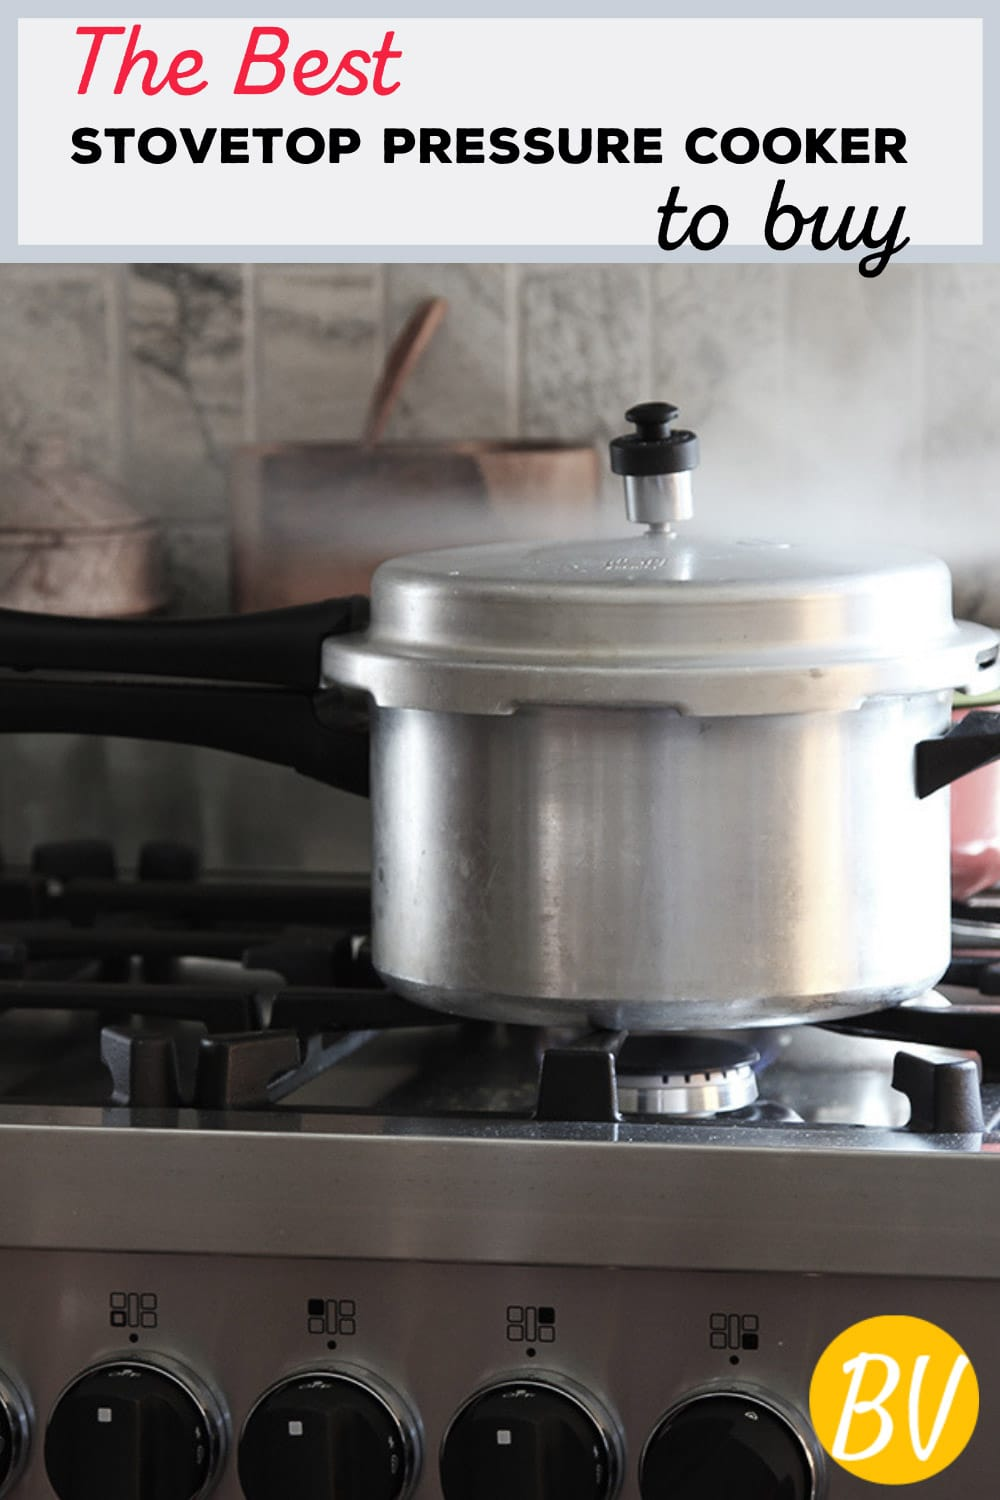 b56795d66 The best stovetop pressure cookers come in an astonishing variety of shapes  and sizes. Choosing